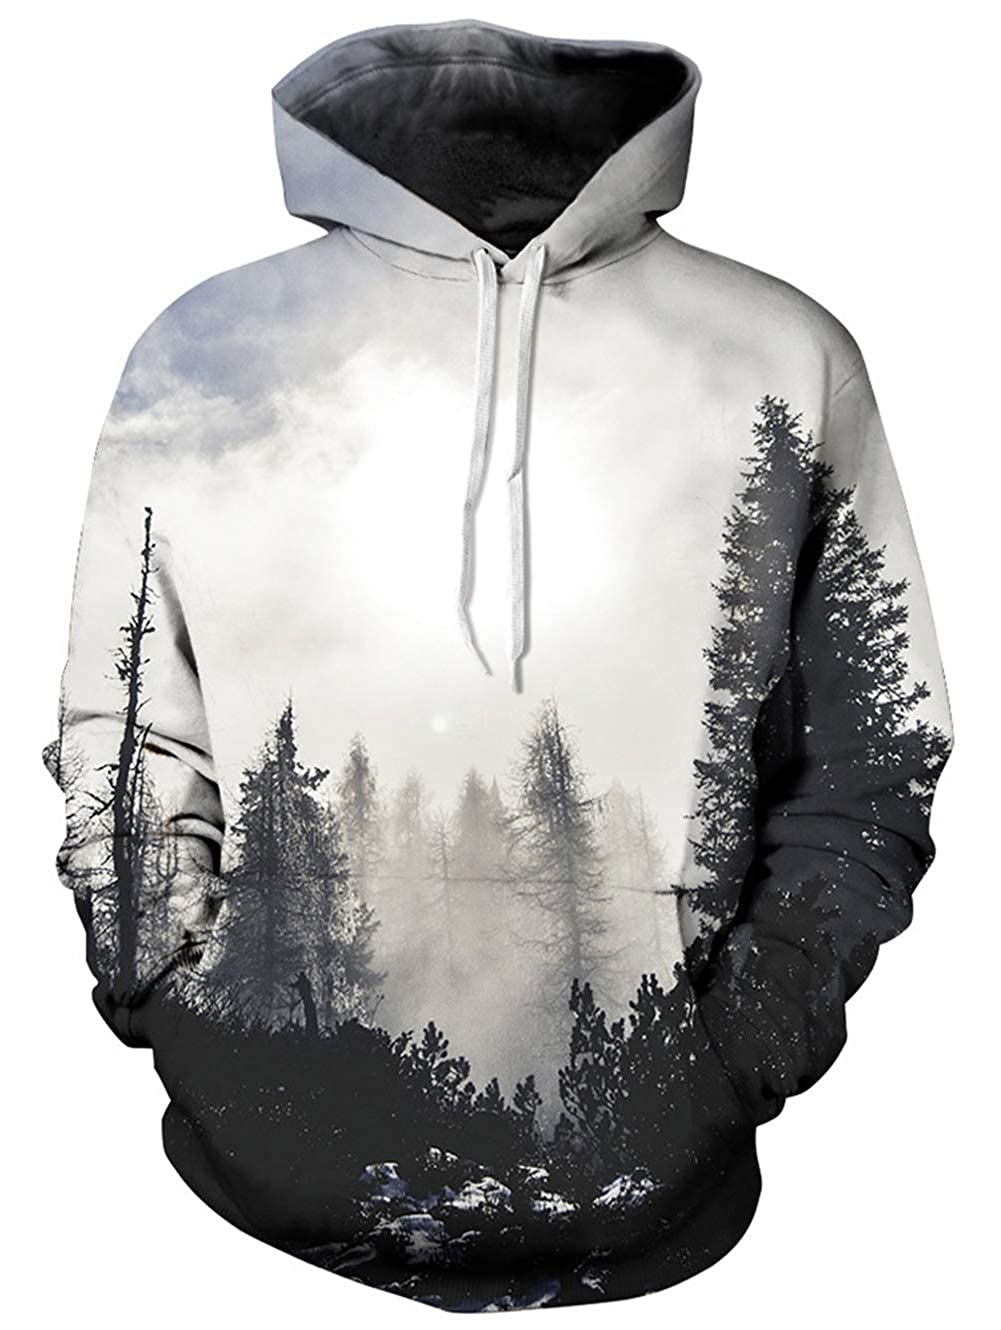 Spreadhoodie Unisex 3D Pullover Hoodie for Men Women Long Sleeve Drawstring Hooded Sweatshirts with Big Pockets S-XXXL